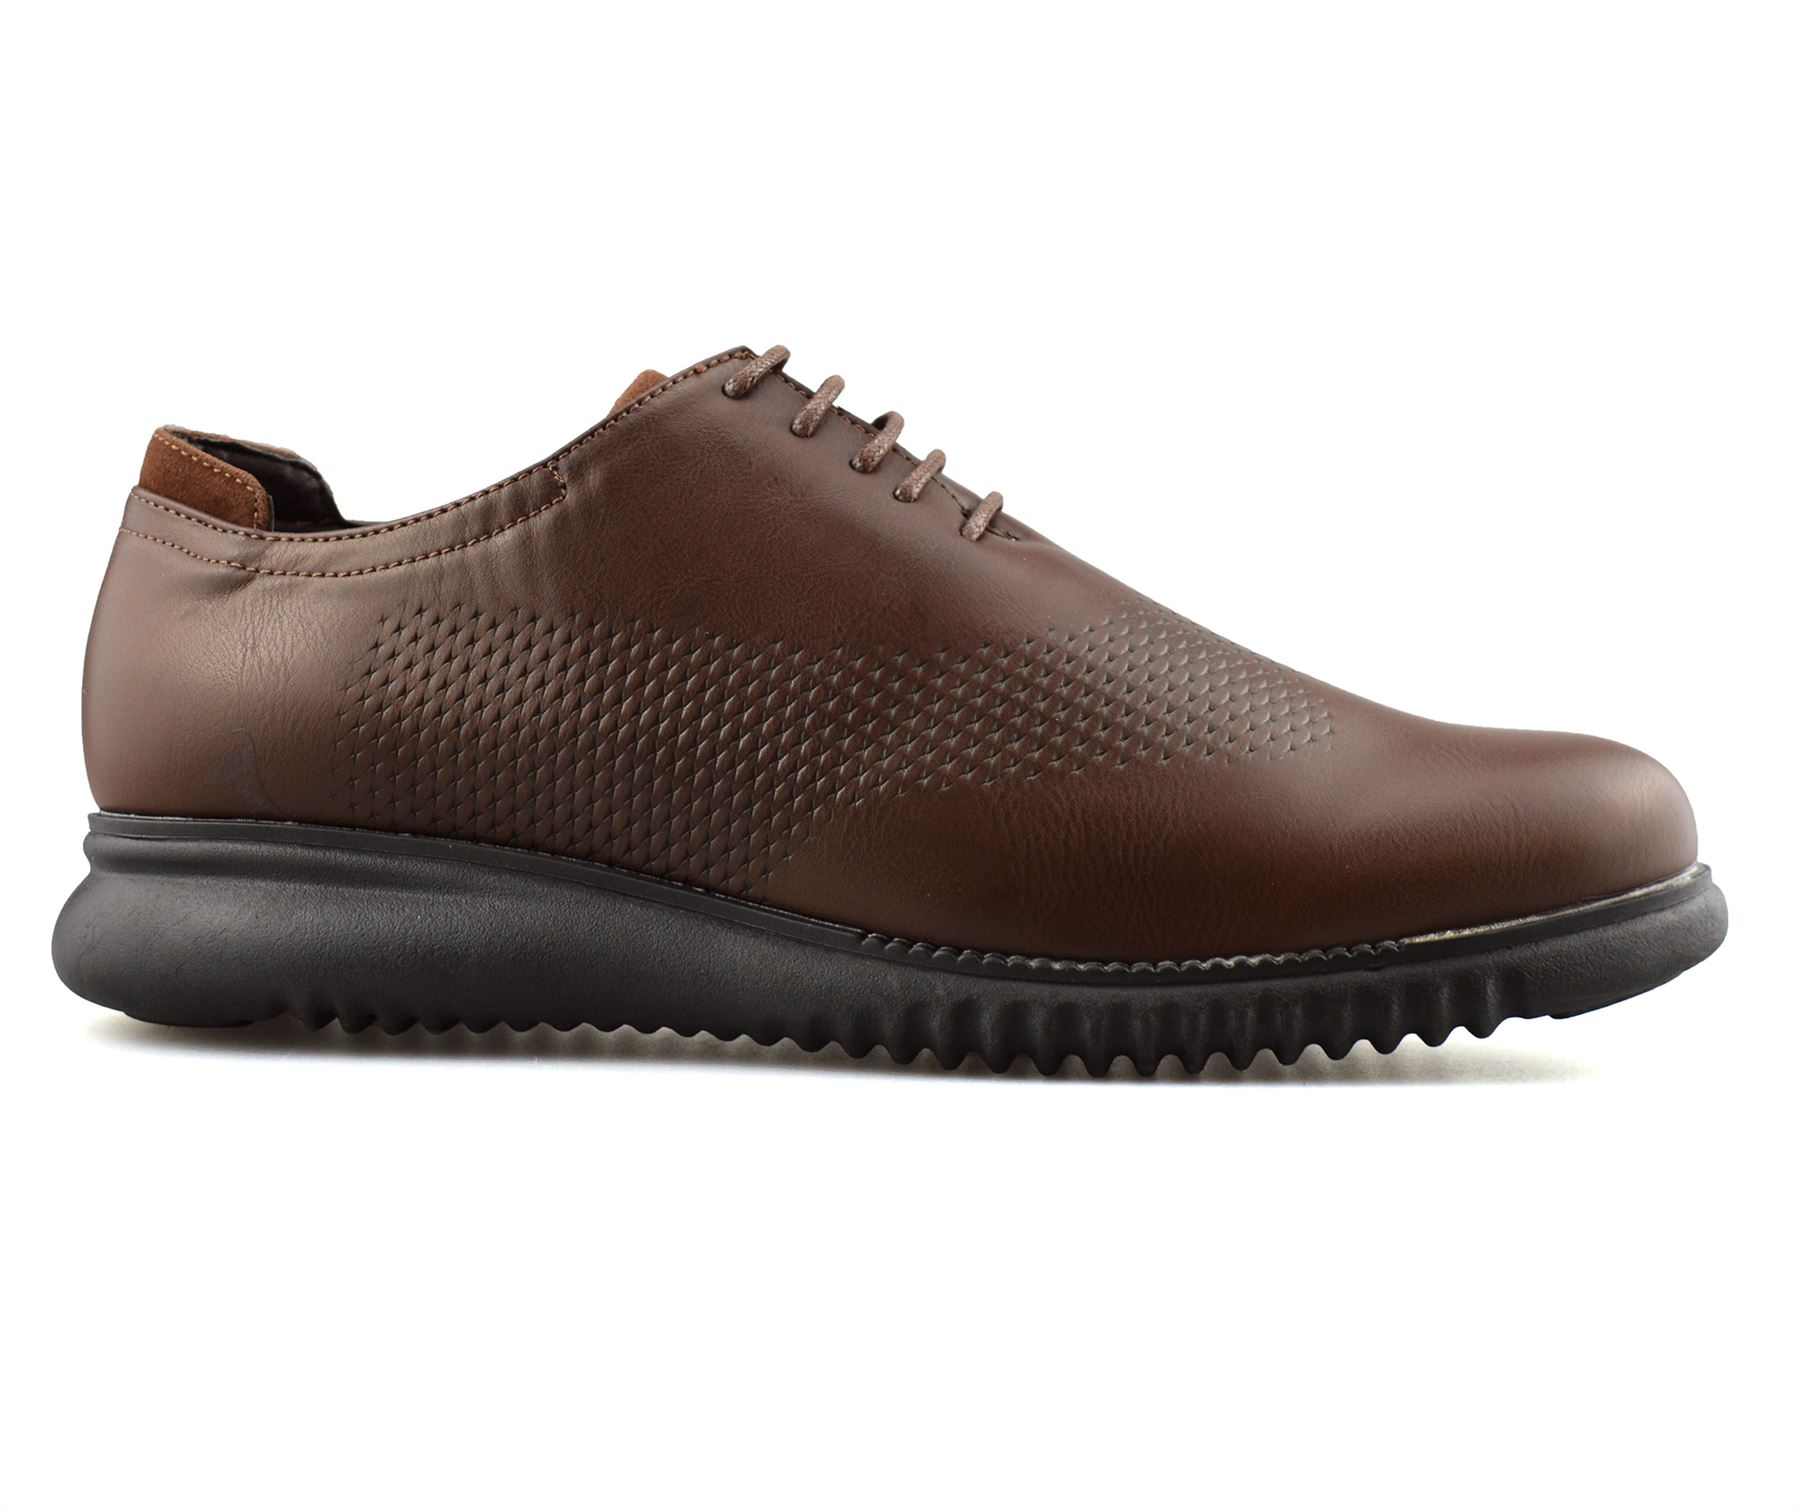 Mens-Casual-Smart-Lace-Up-Oxford-Brogue-Walking-Work-Office-Trainers-Shoes-Size thumbnail 20